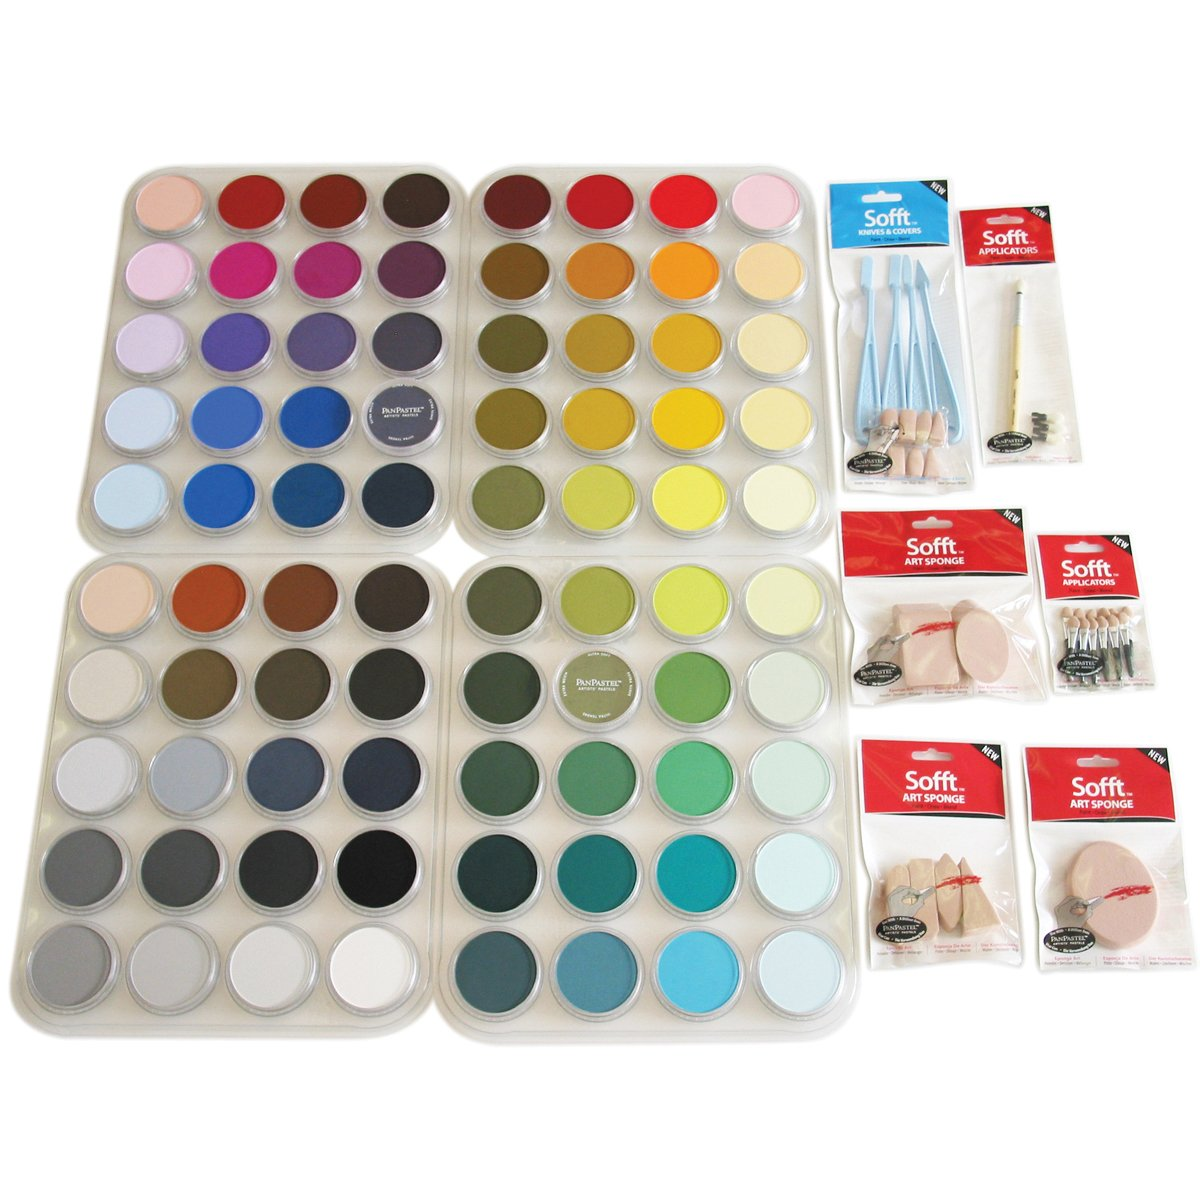 Colorfin Ppstl80 Panpastel Ultra Soft Artist Pastel Set 80-Pack 2